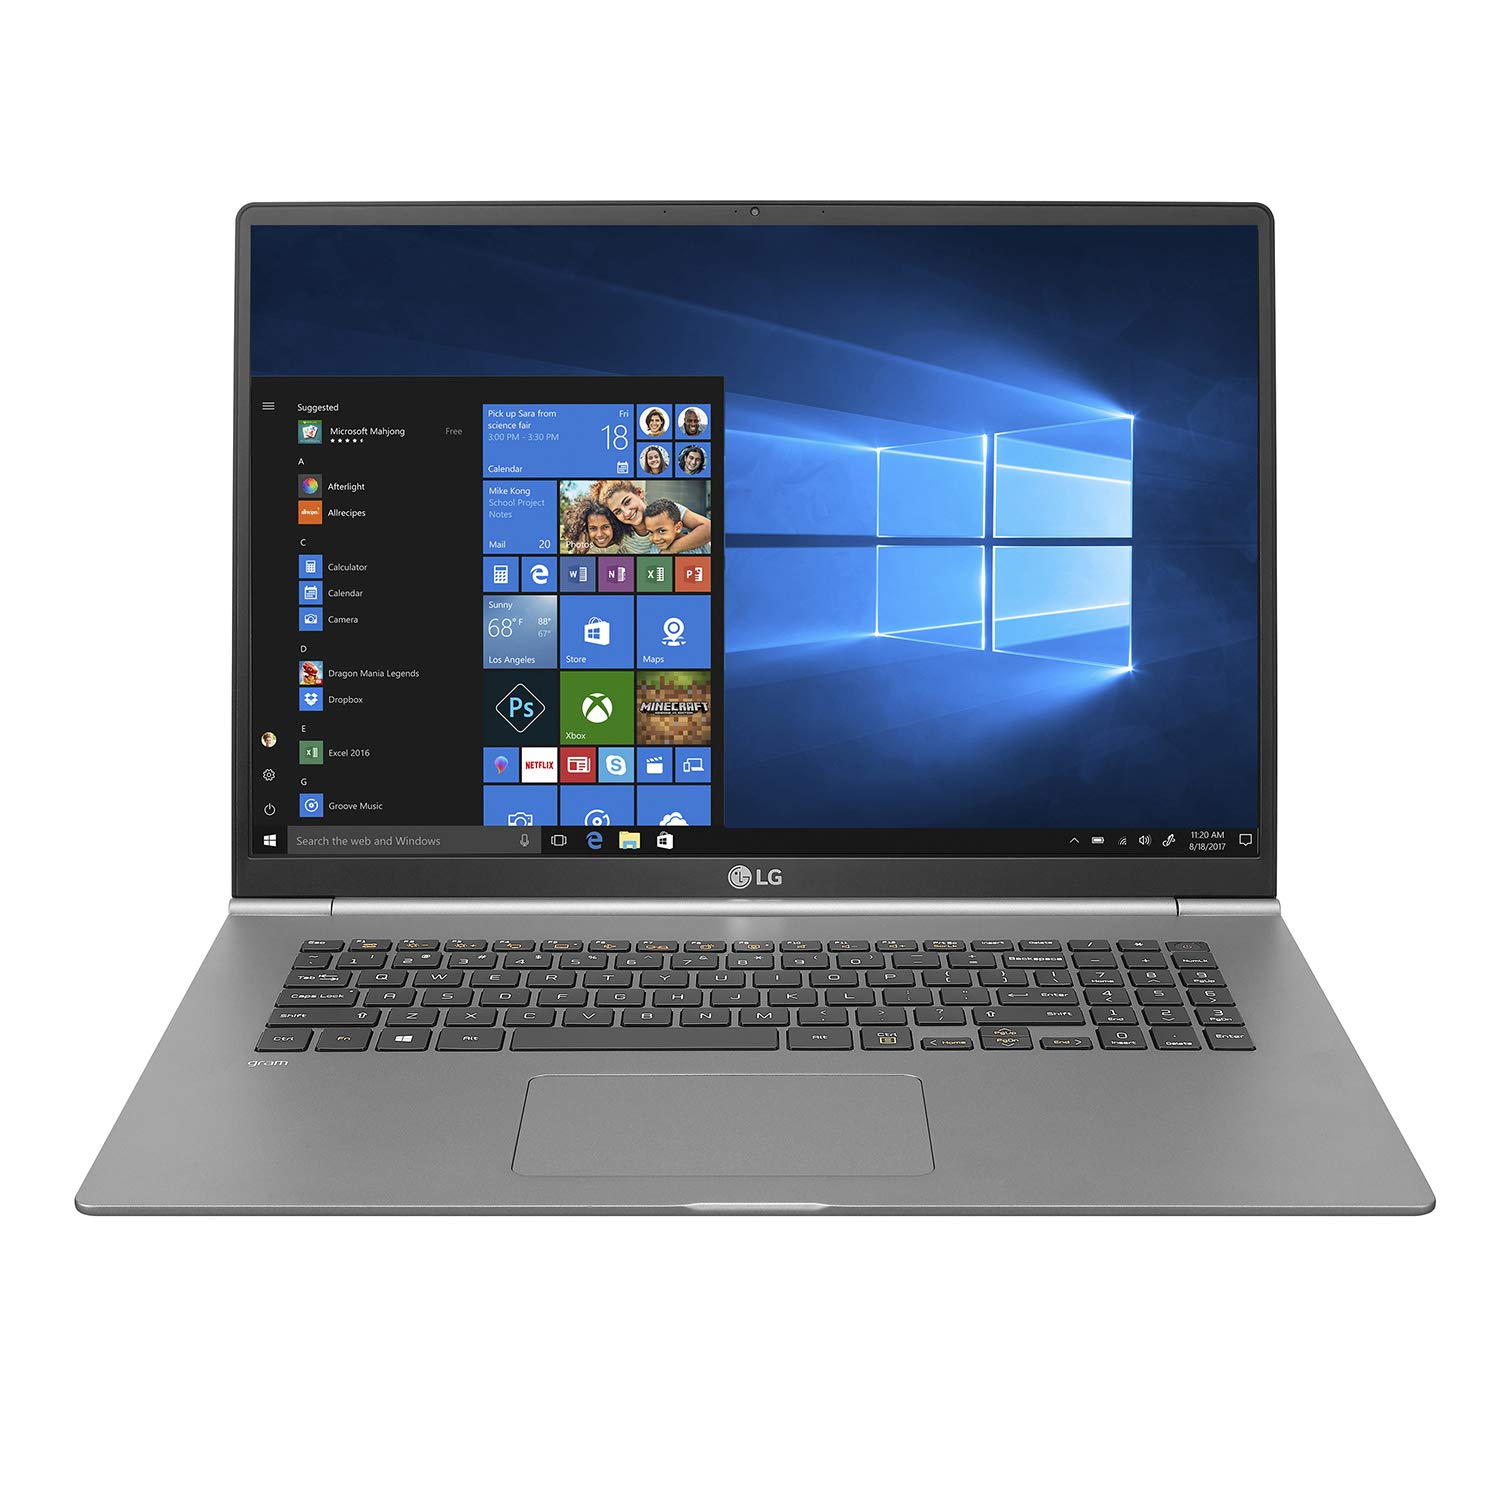 LG gram Thin and Light Laptop - 17'  (2560 x 1600) IPS Display, Intel 8th Gen Core i7, 16GB RAM, 512GB SSD, up to 19.5 Hour Battery, Thunderbolt 3 - 17Z990-R.AAS8U1 (2019), Dark Silver